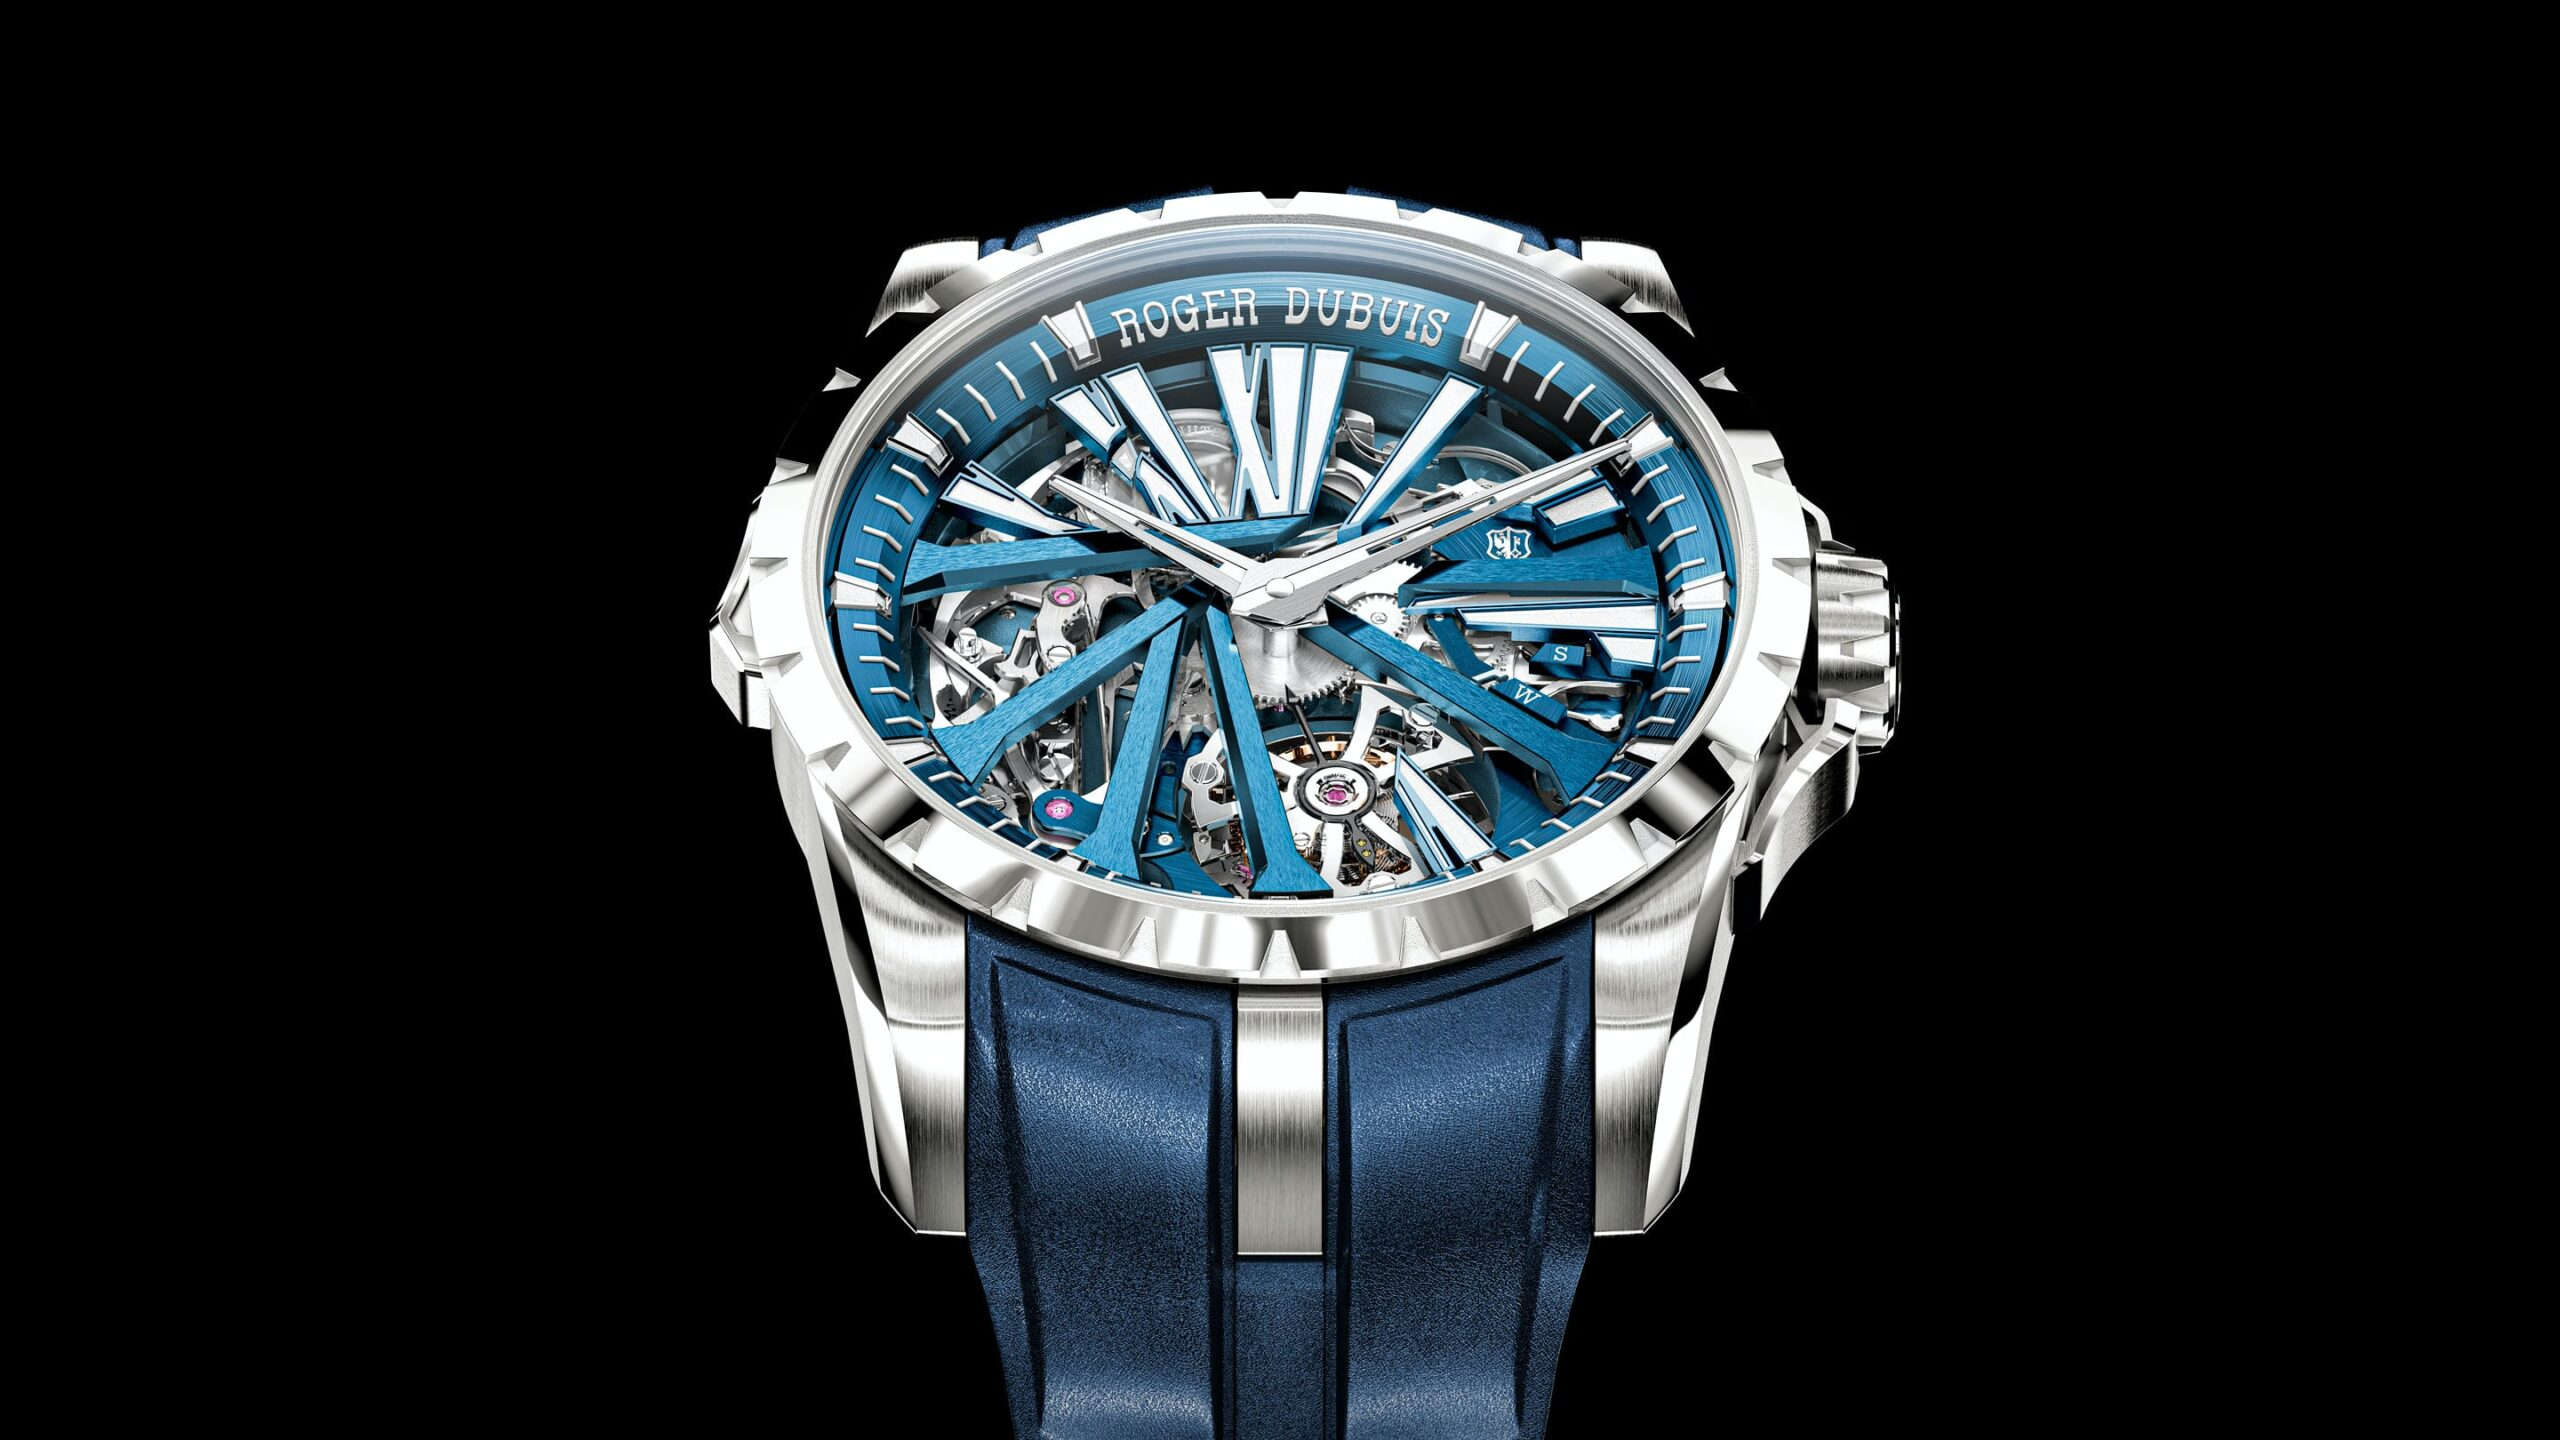 Roger Dubuis Excalibur Diabolus in Machina slider